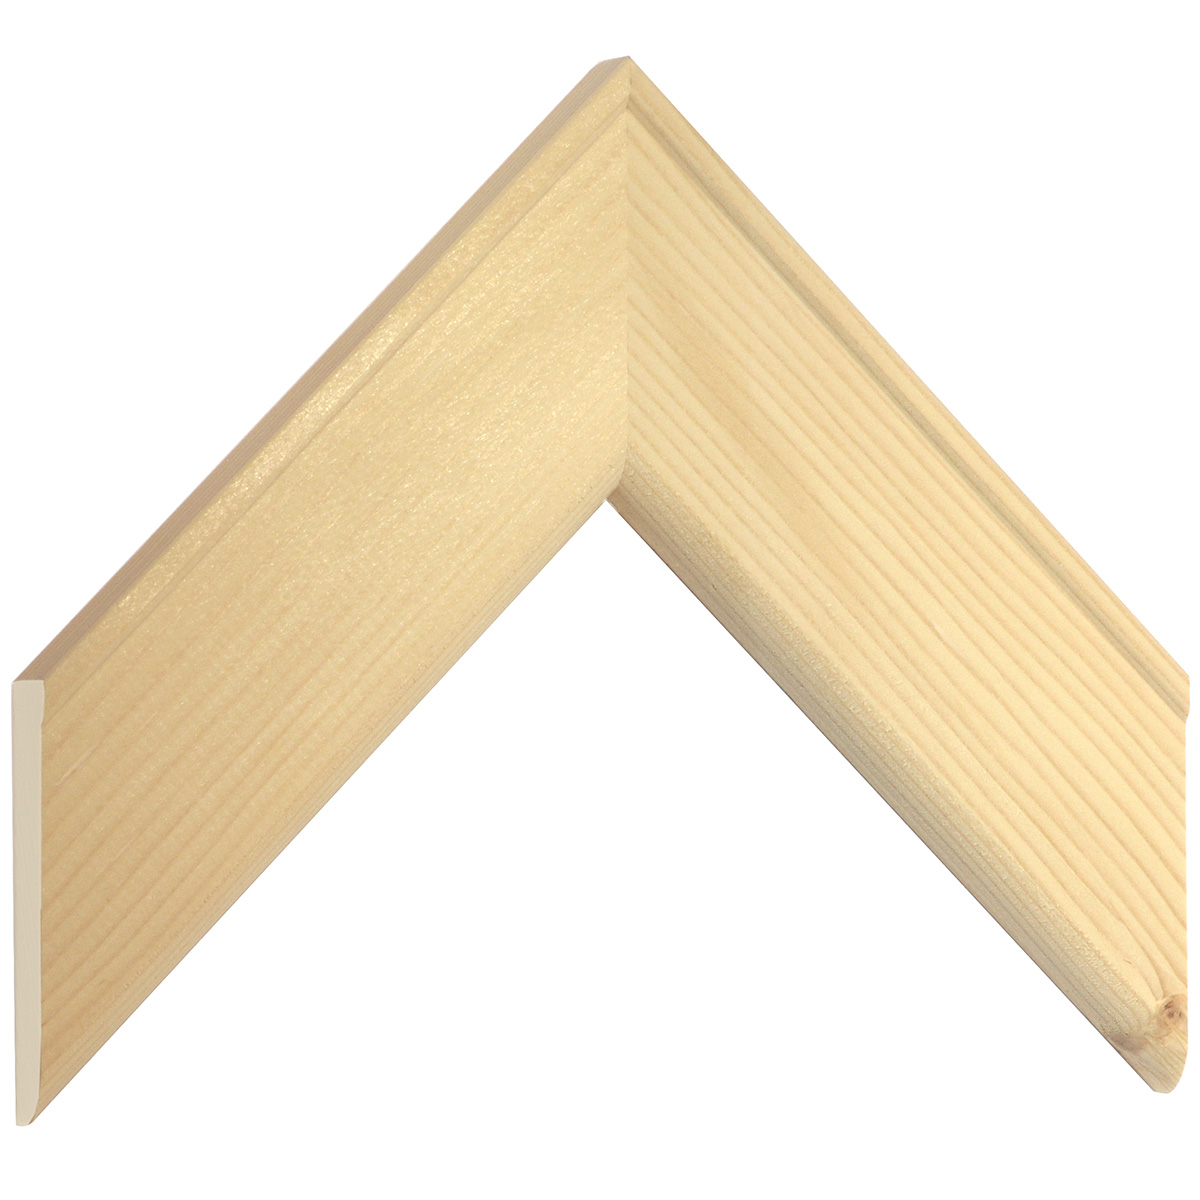 Moulding fir, width 54mm, height 15mm, bare timber